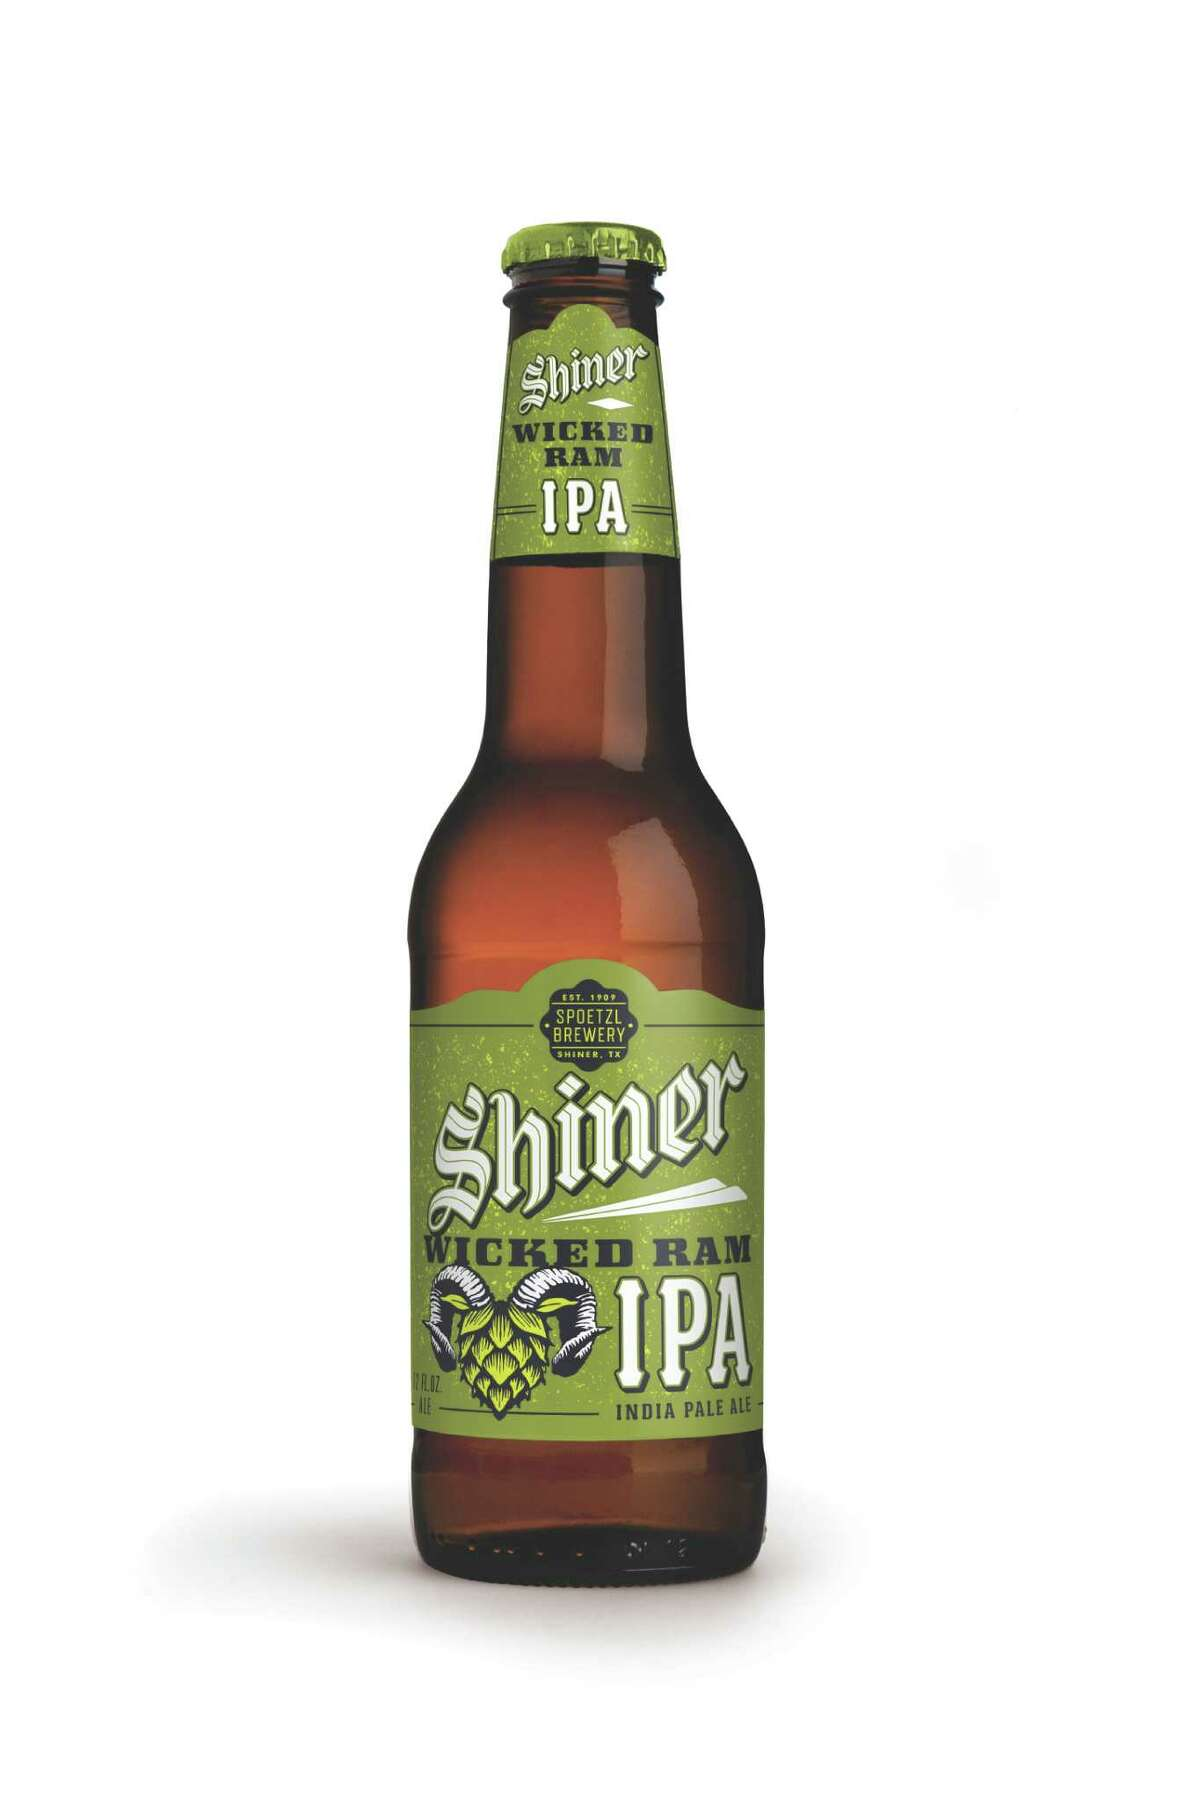 Shiner Wicked Ram IPA is the first India pale ale brewed by the Spoetzl Brewery in Shiner. Beer released October 2015.